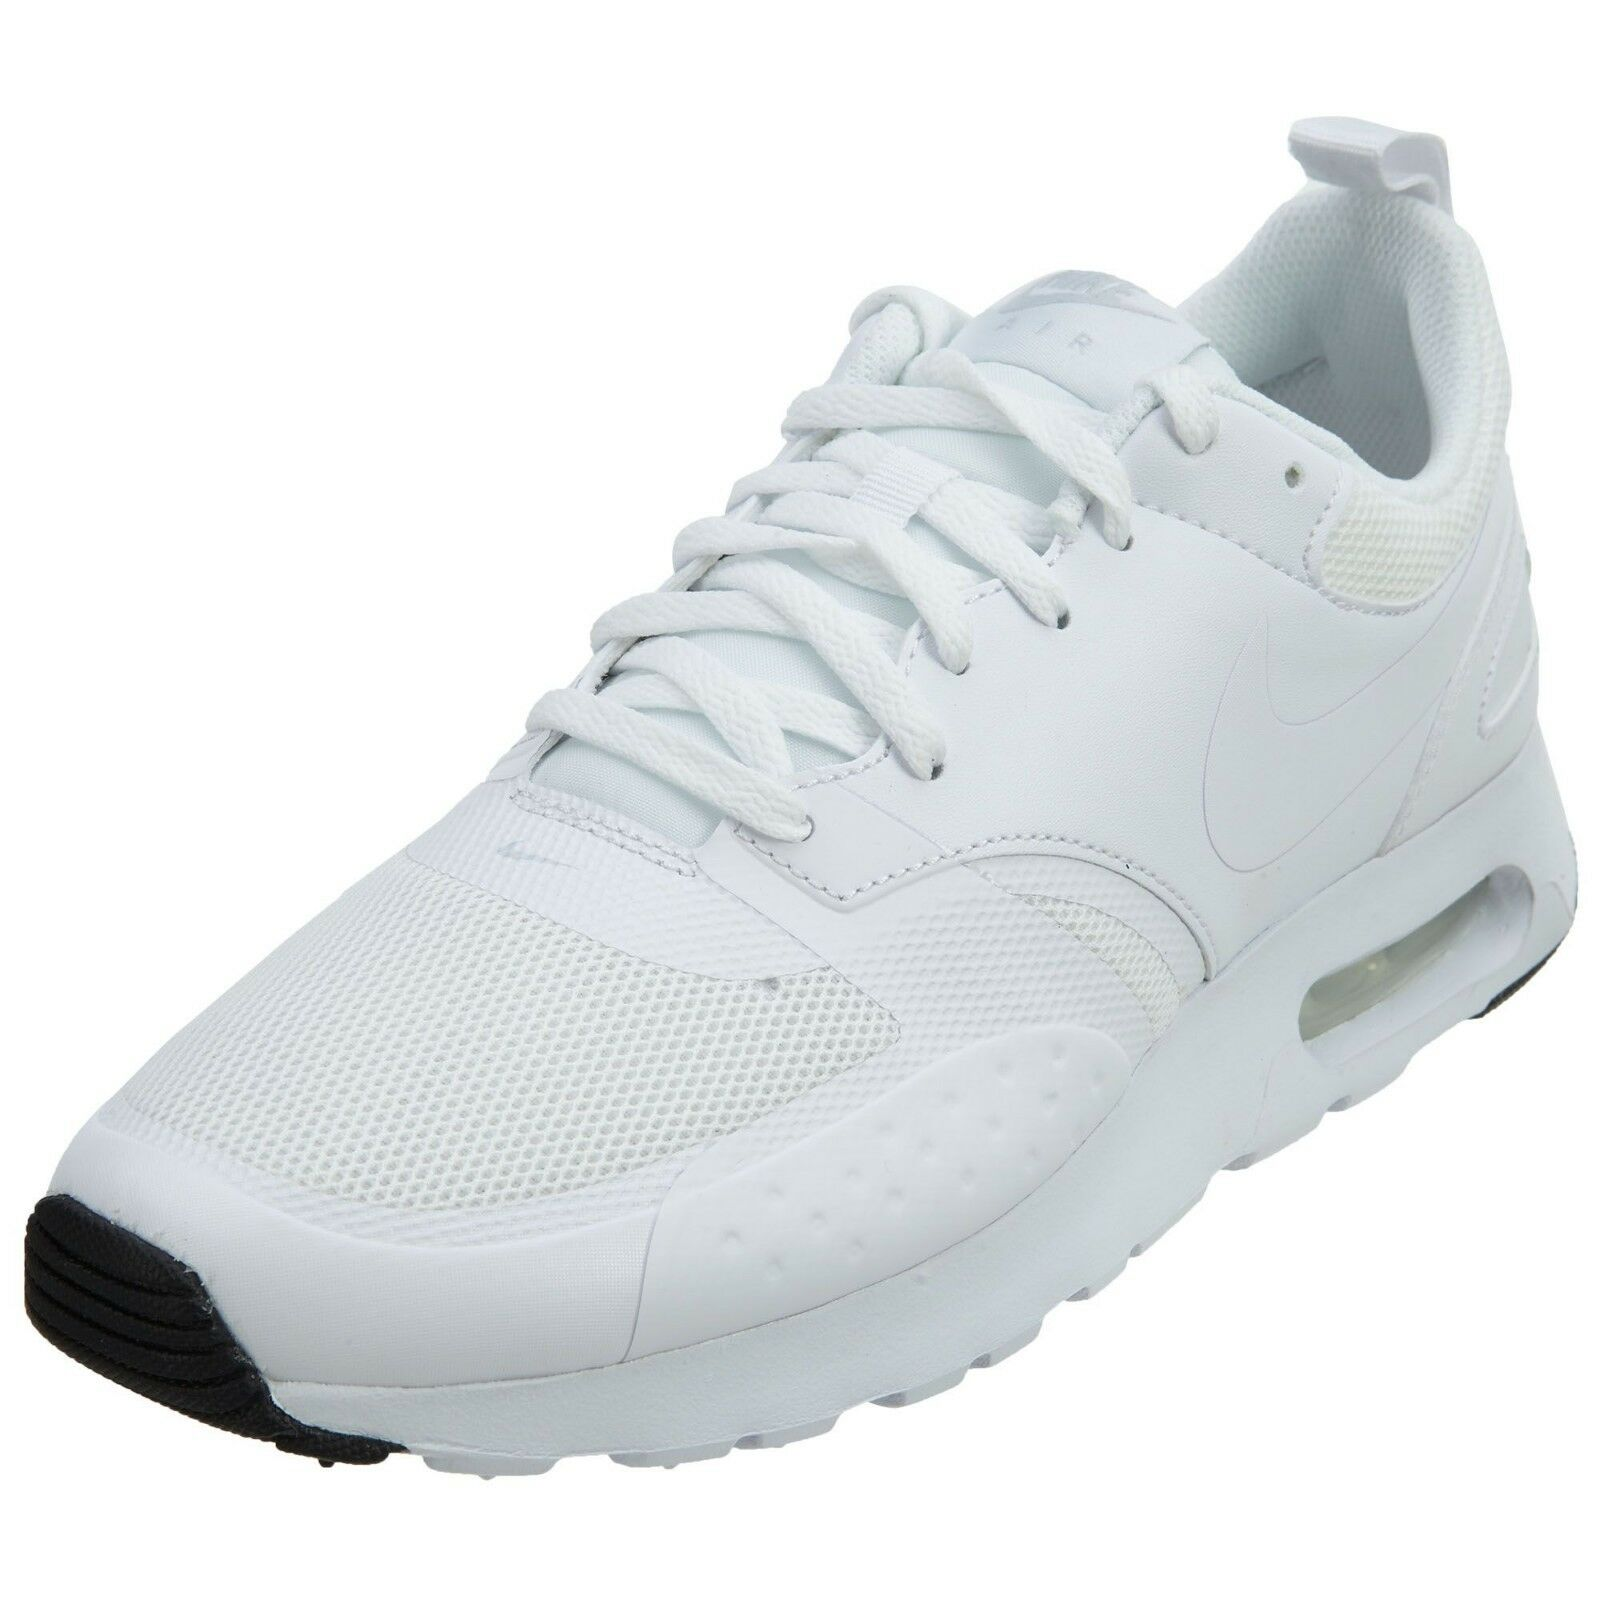 Nike Air Max Vision Trainers Size Boxed Brand New White Mens